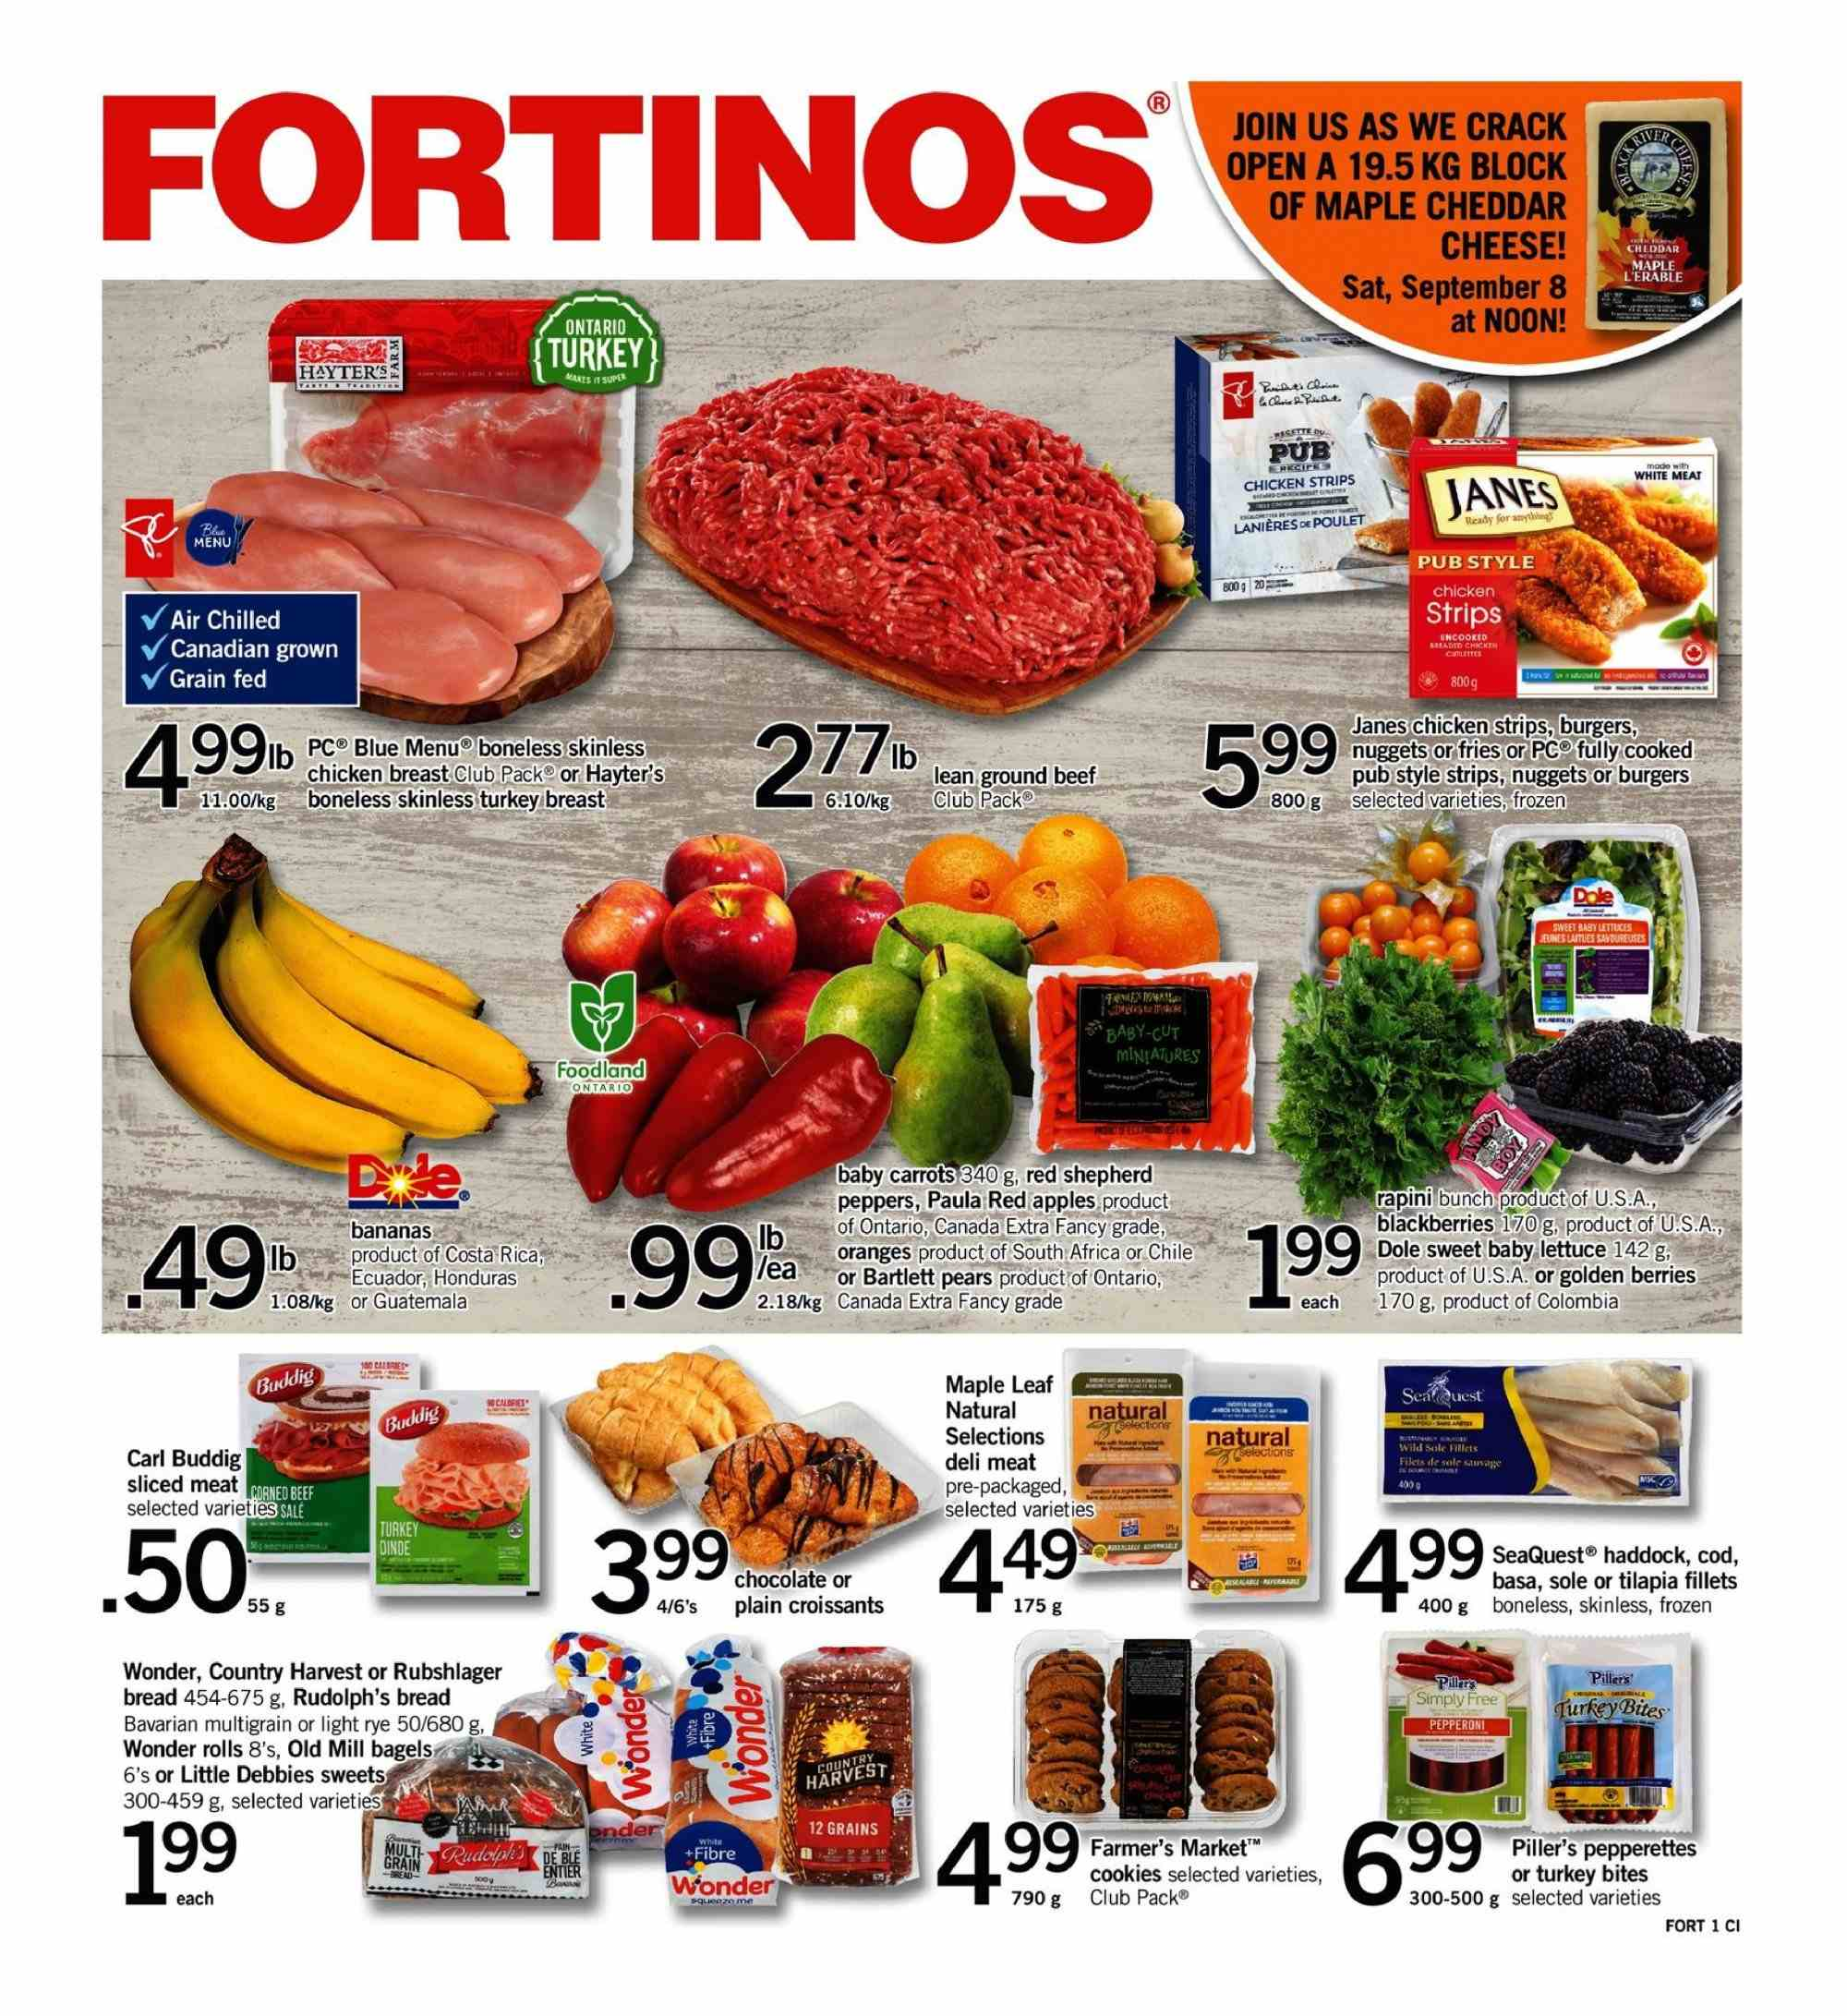 Fortinos Flyer  - September 06, 2018 - September 12, 2018. Page 1.